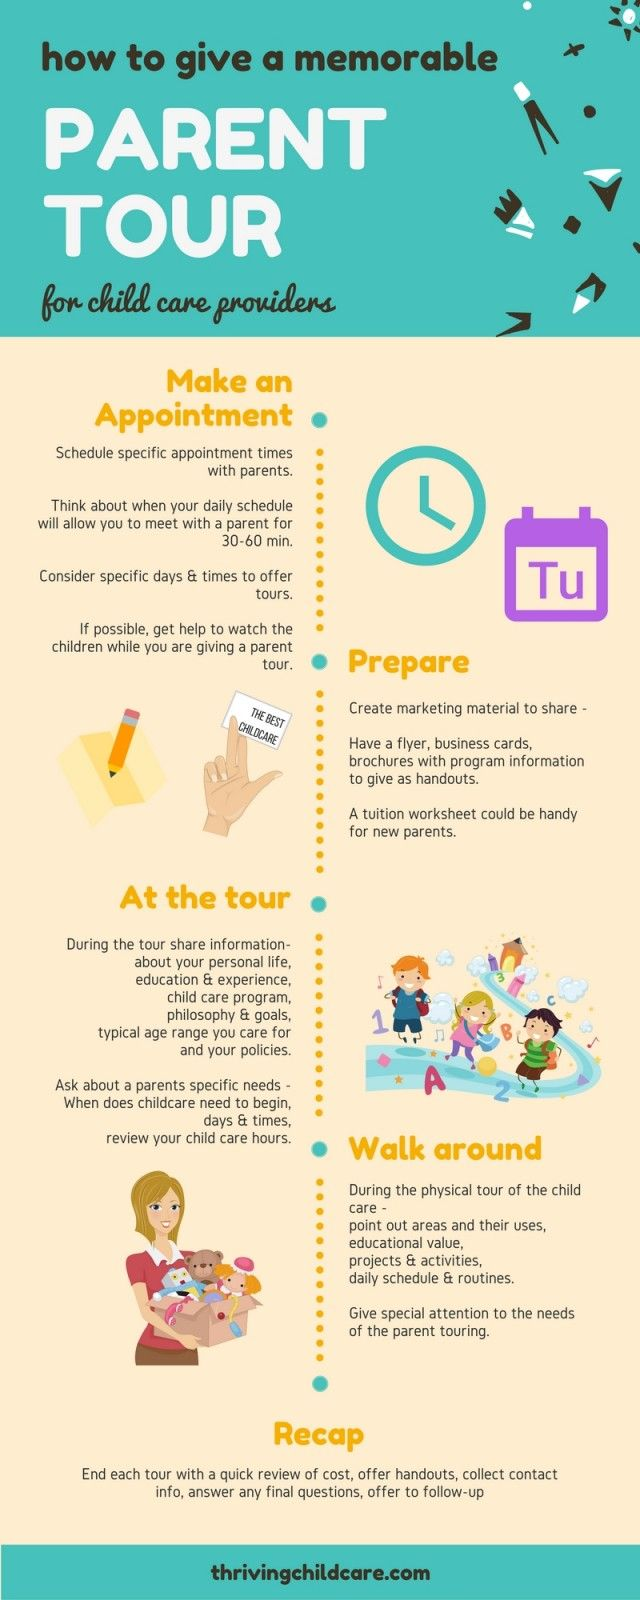 how to give a parent tour | Thrivingchildcare: Our Blog | Pinterest ...